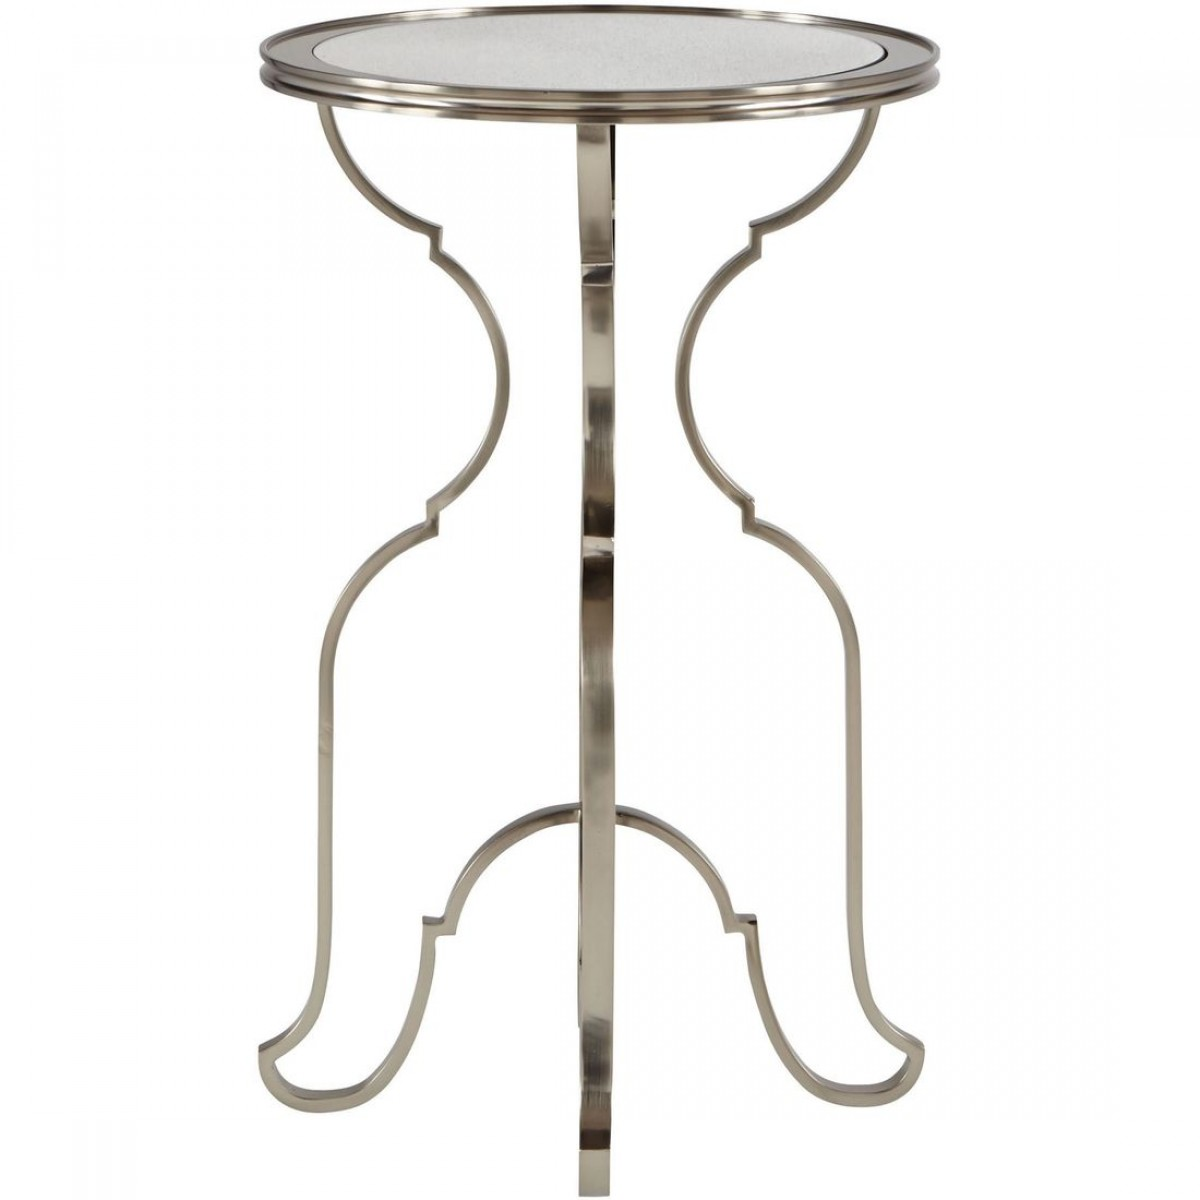 bernhardt laurel round metal accent table outdoor cream linen tablecloth pedestal off white coffee chair patio set modern lamps for living room build side mosaic outside small